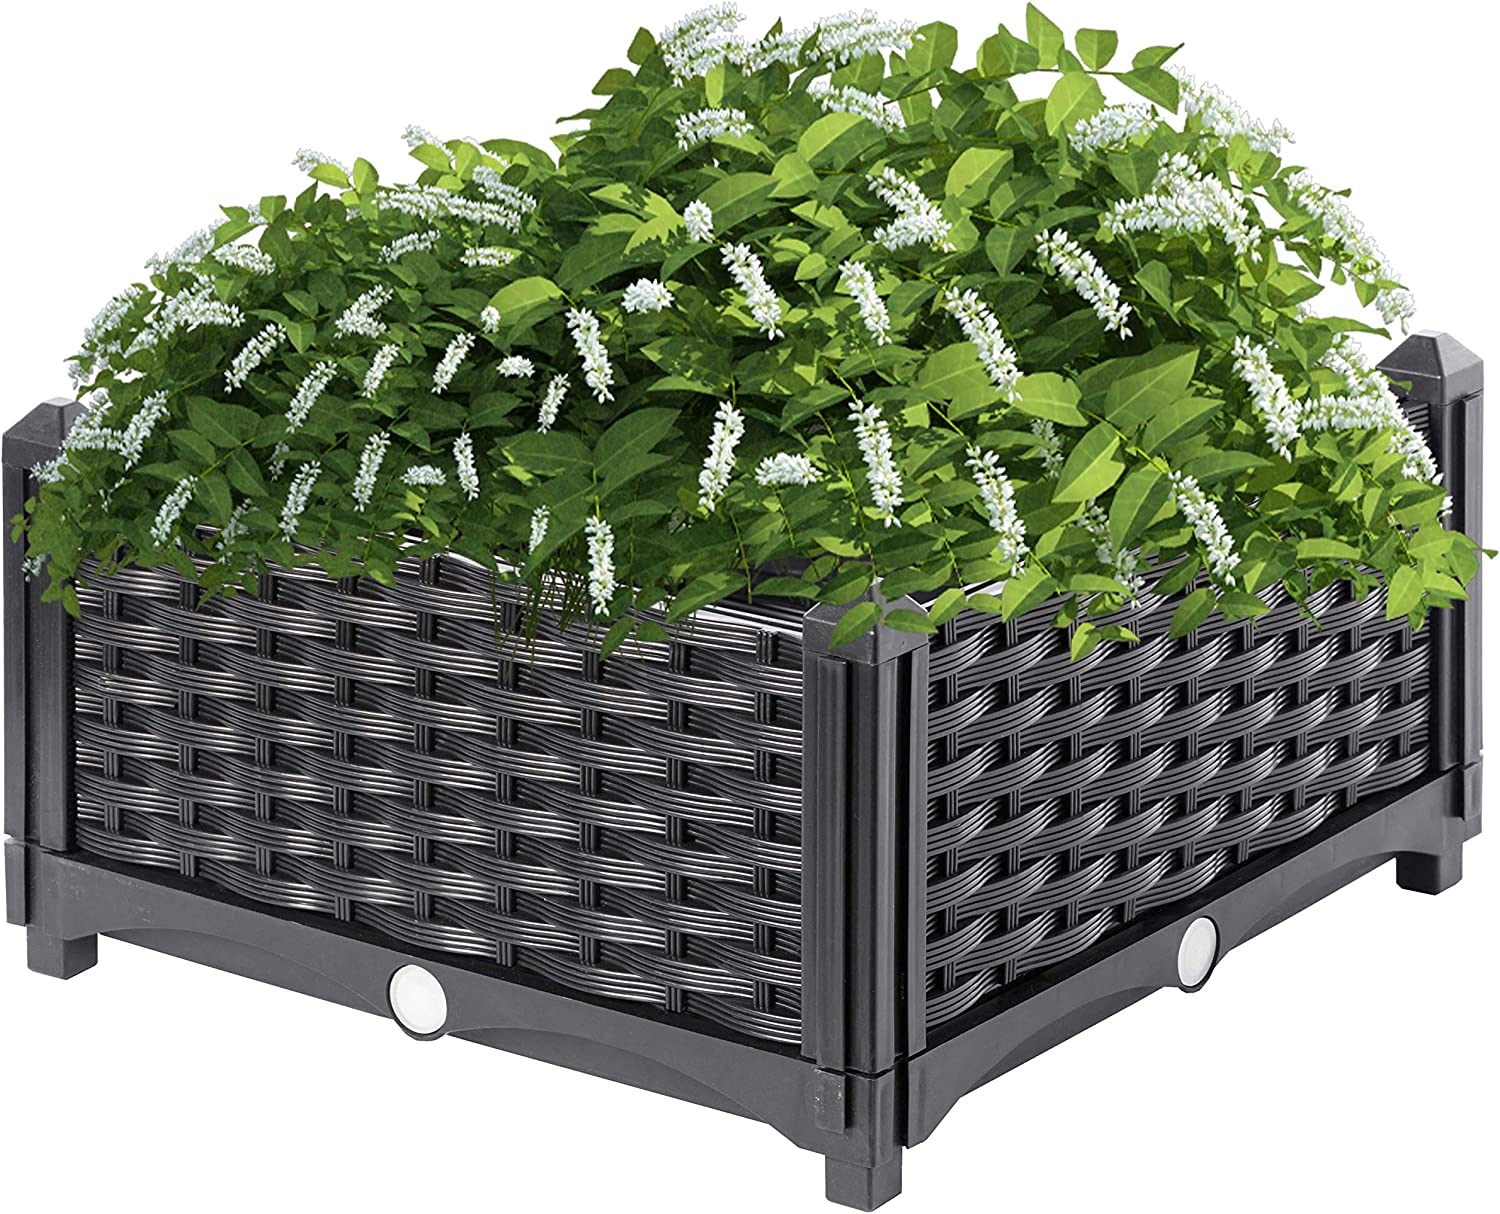 Gardenised QI003892.NL Raised Garden Screwless Planter Bed, Charcoal